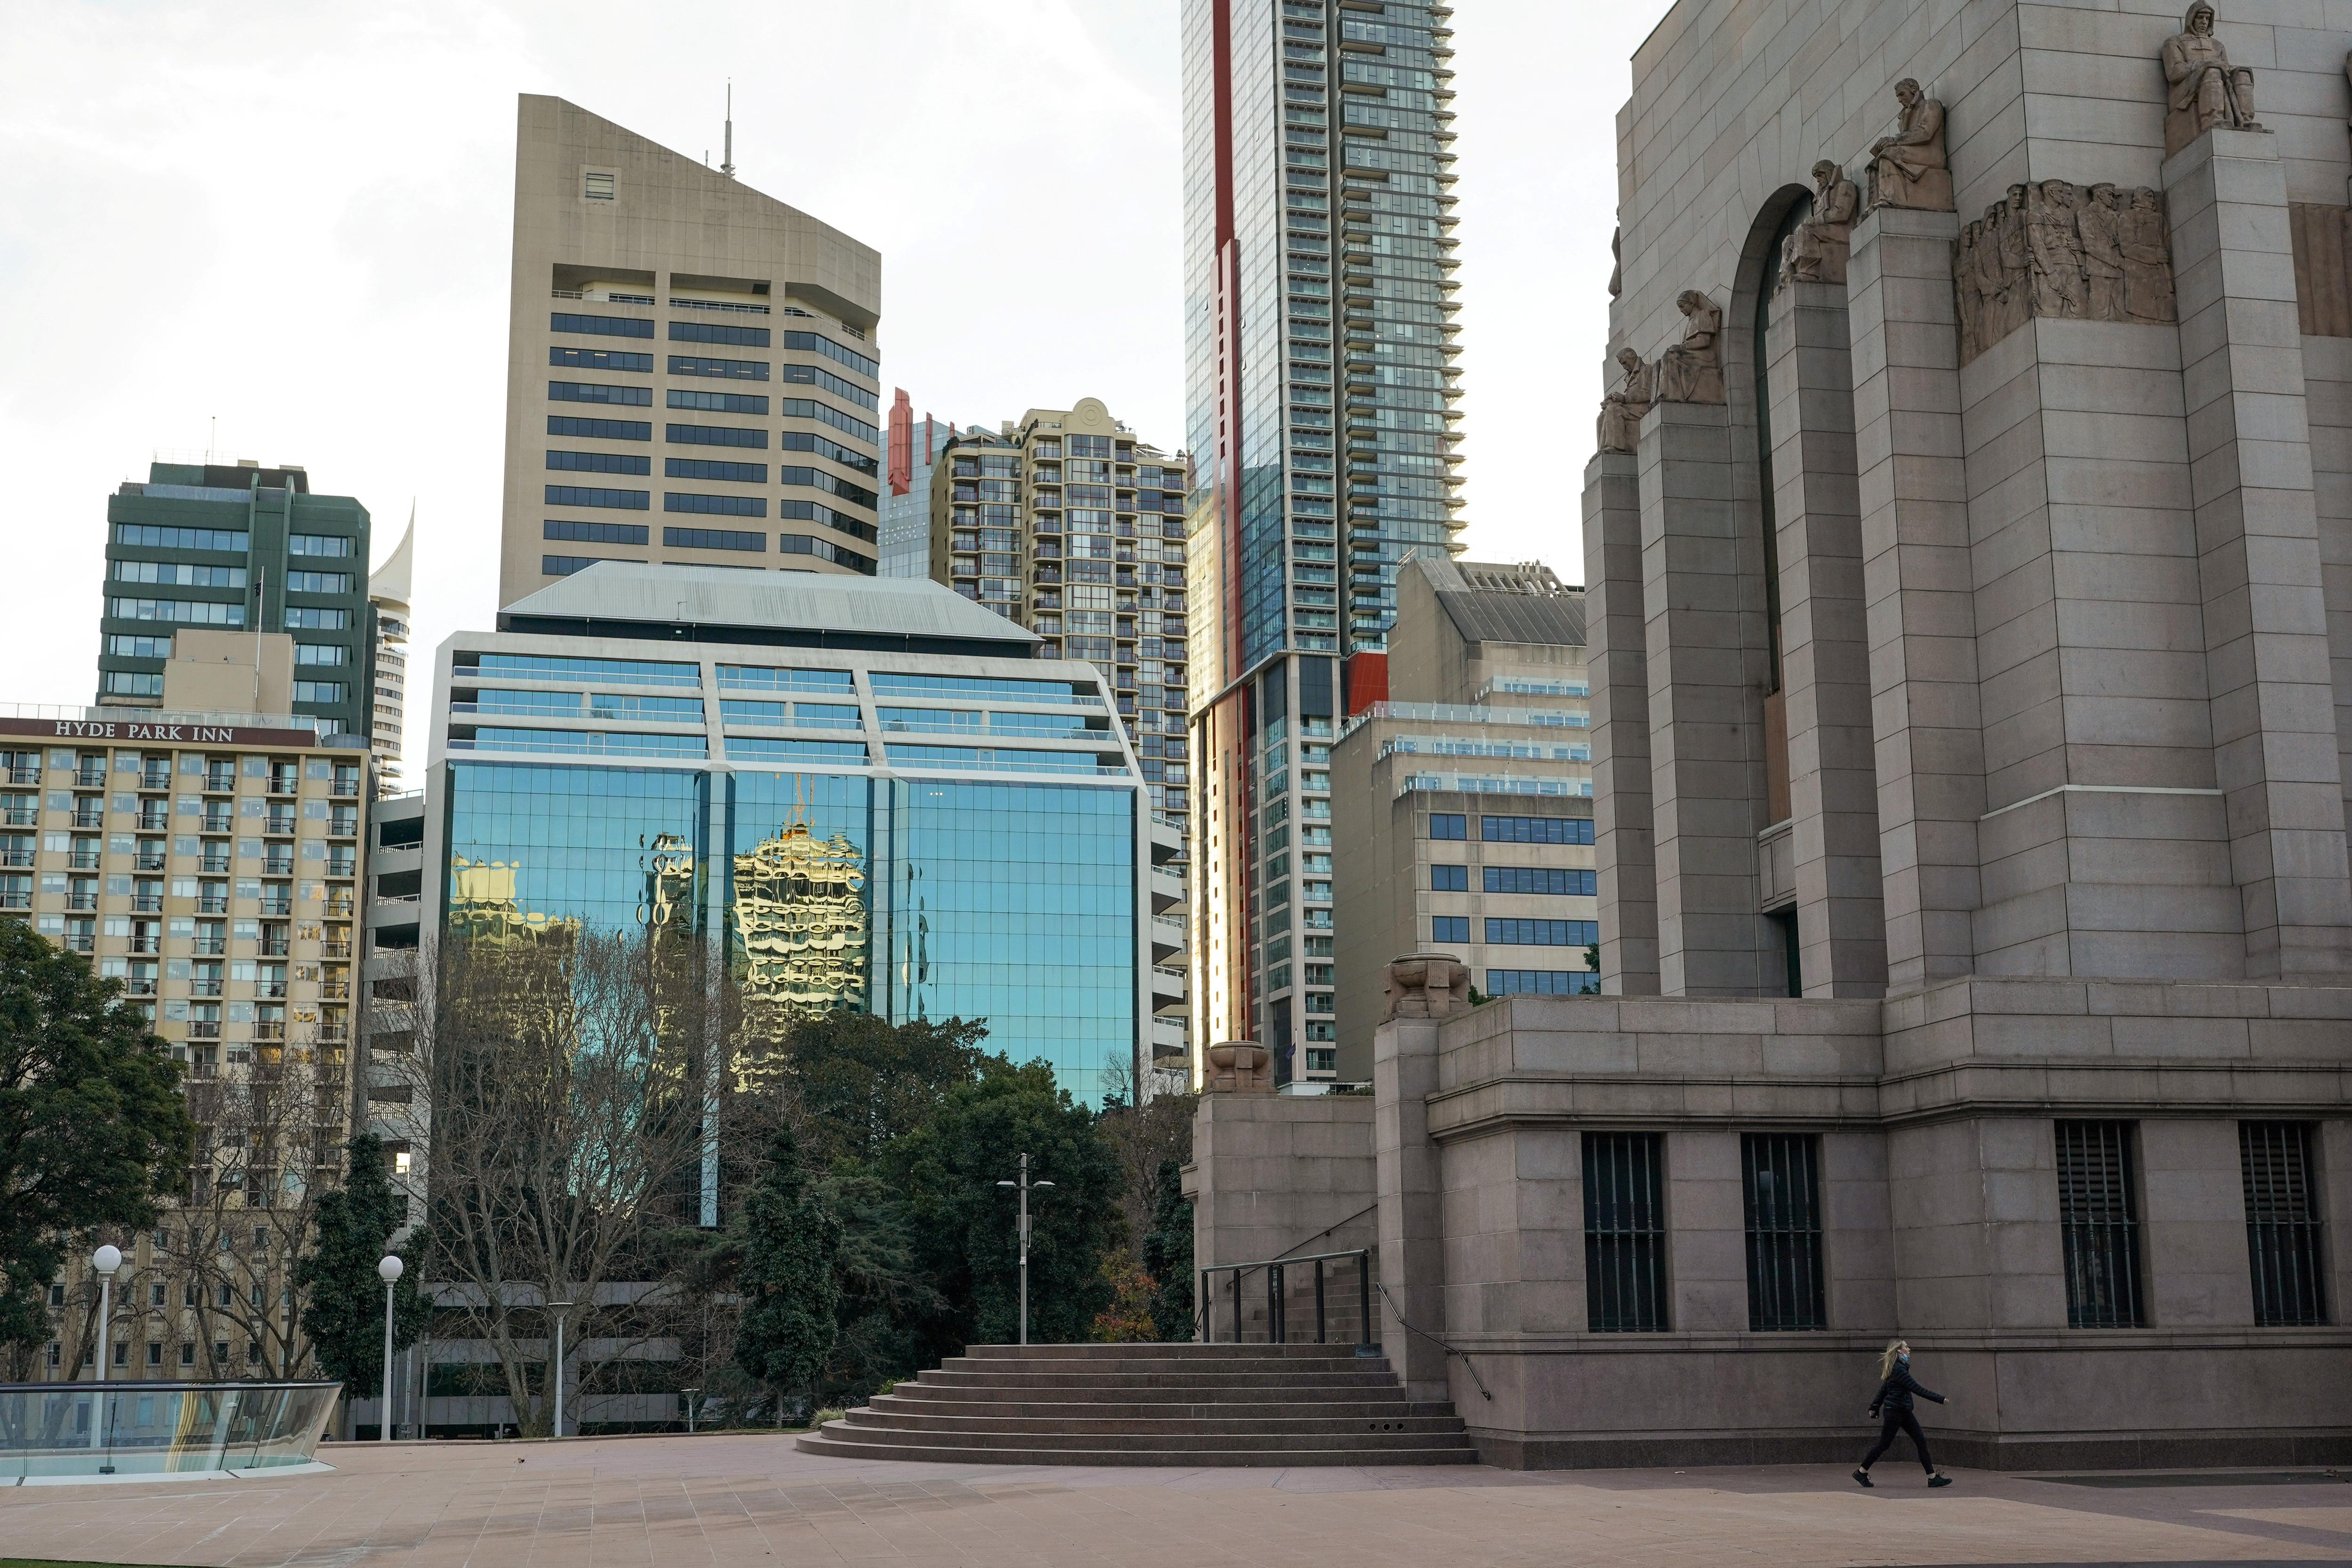 A lone woman walks past the Anzac Memorial as Hyde Park is mostly devoid of people during a lockdown to curb the spread of a coronavirus disease (COVID-19) outbreak in Sydney, Australia, July 22, 2021.  REUTERS/Loren Elliott/File Photo